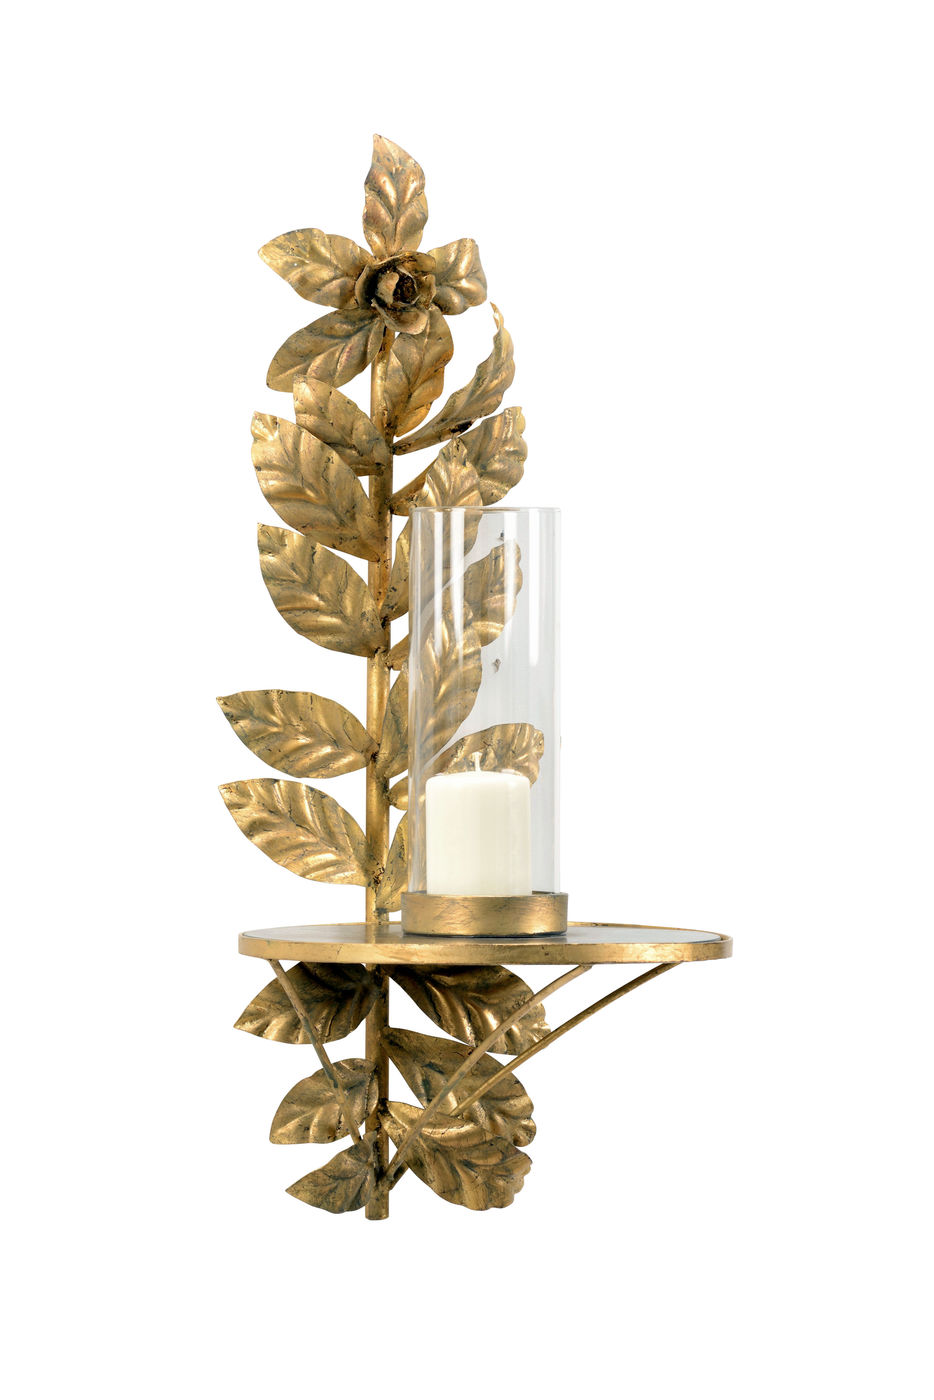 301523 Wildwood Iron/Glass/Mirror Antique Gold Leaf/Clear/Antique Leaves Candle Sconce